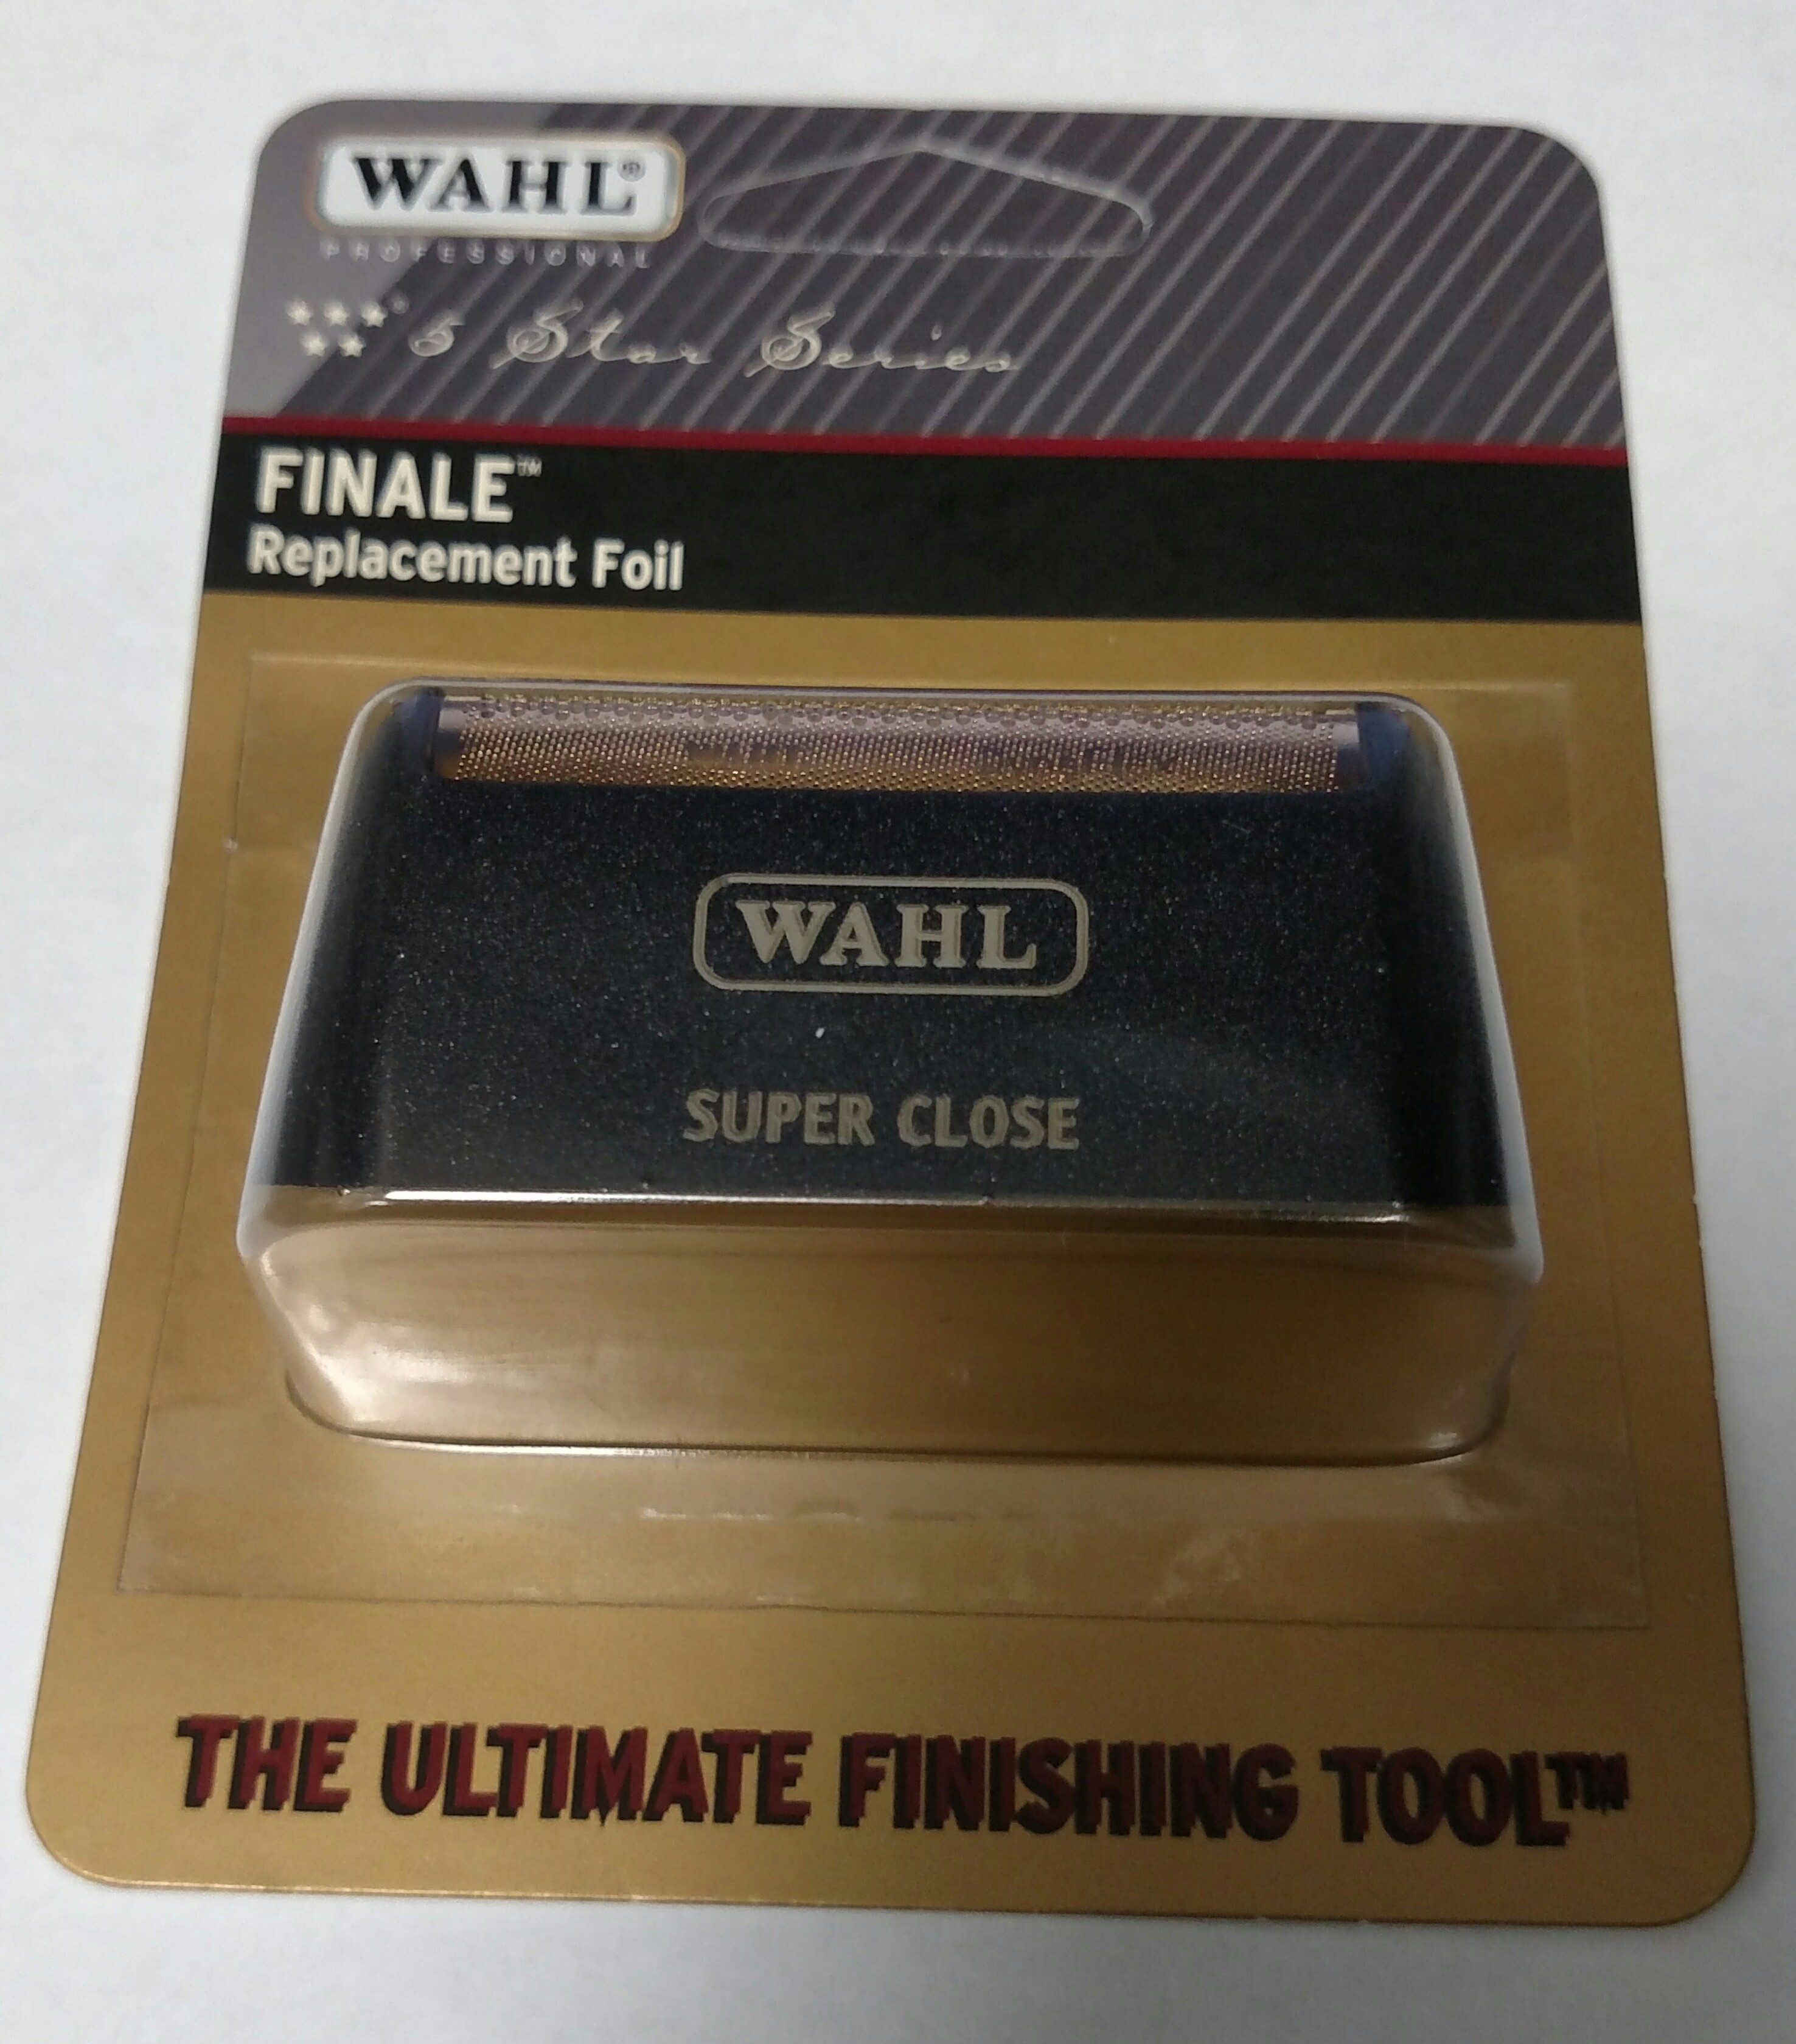 Wahl Finale Super Close Foil #7043-100